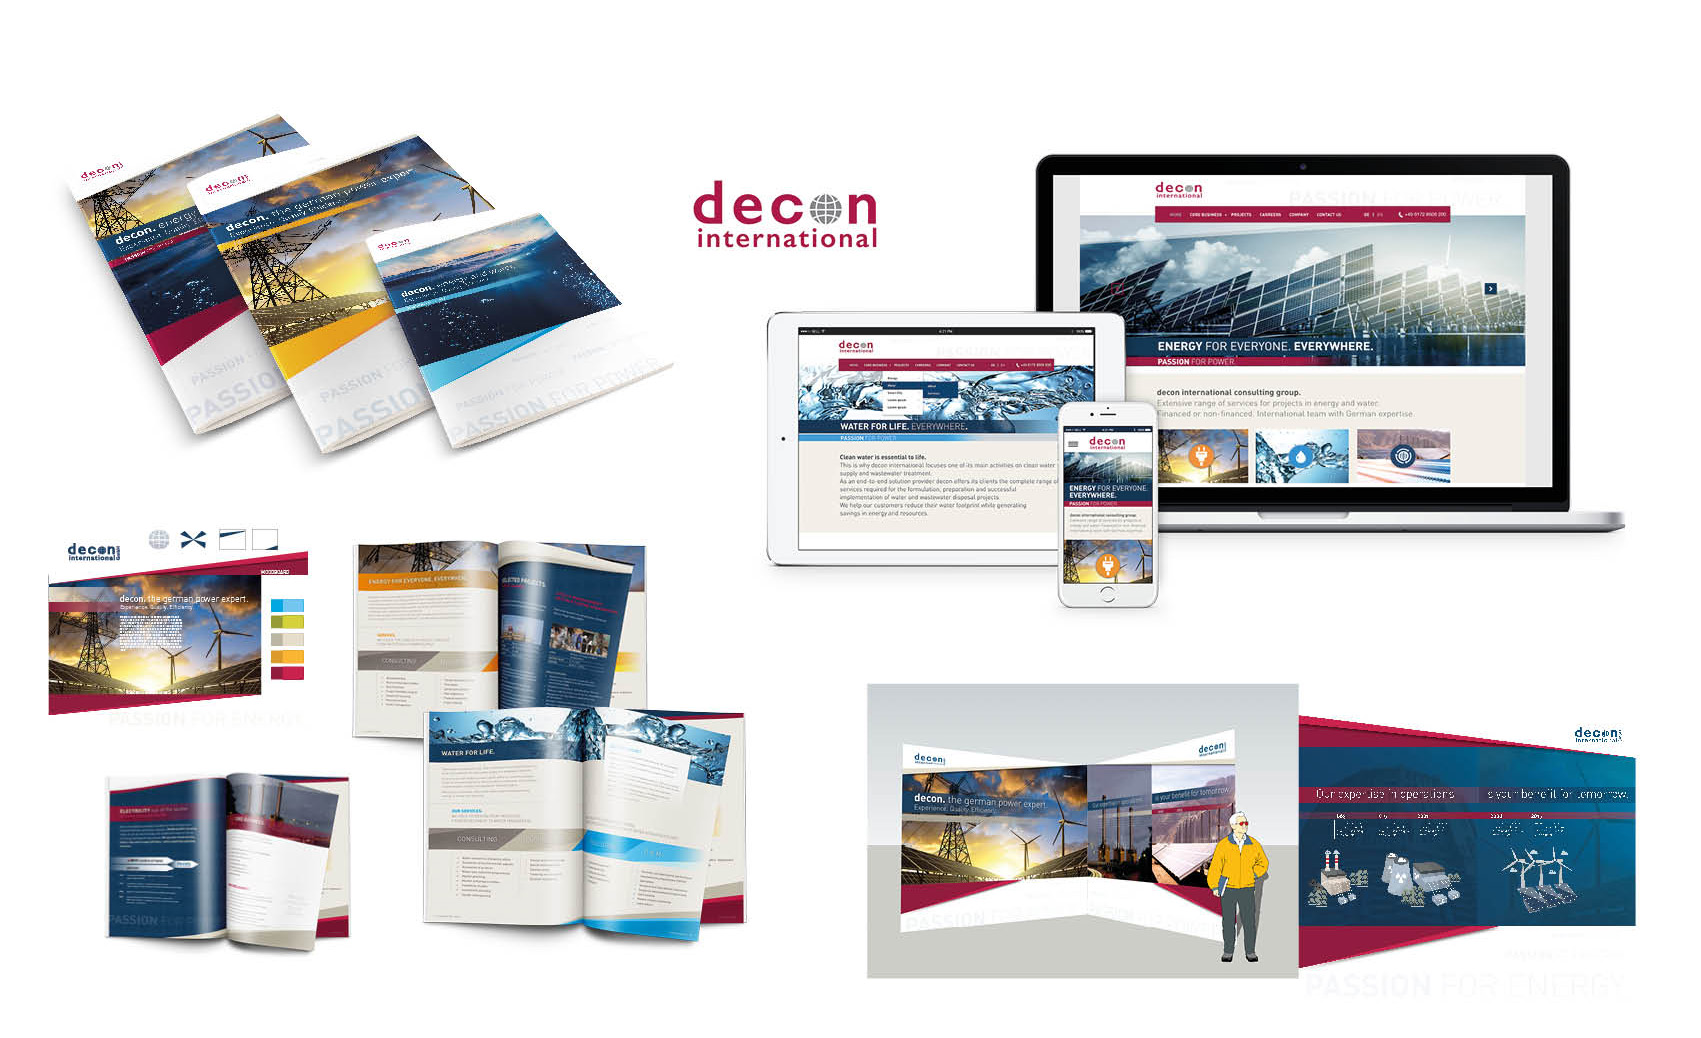 decon international - Brand Identity Design